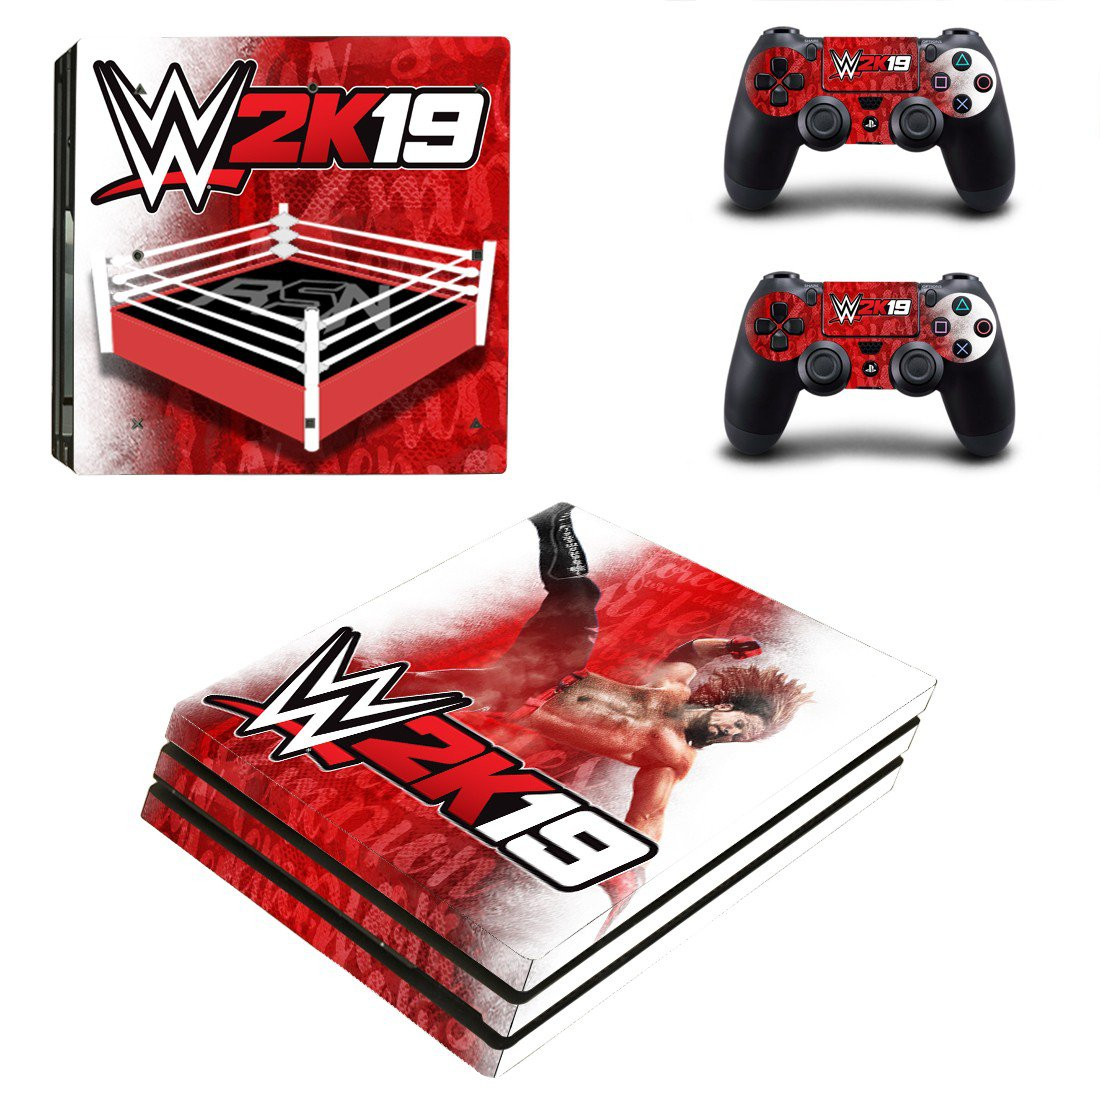 WWE 2K19 decal skin sticker for PS4 Pro console and controllers